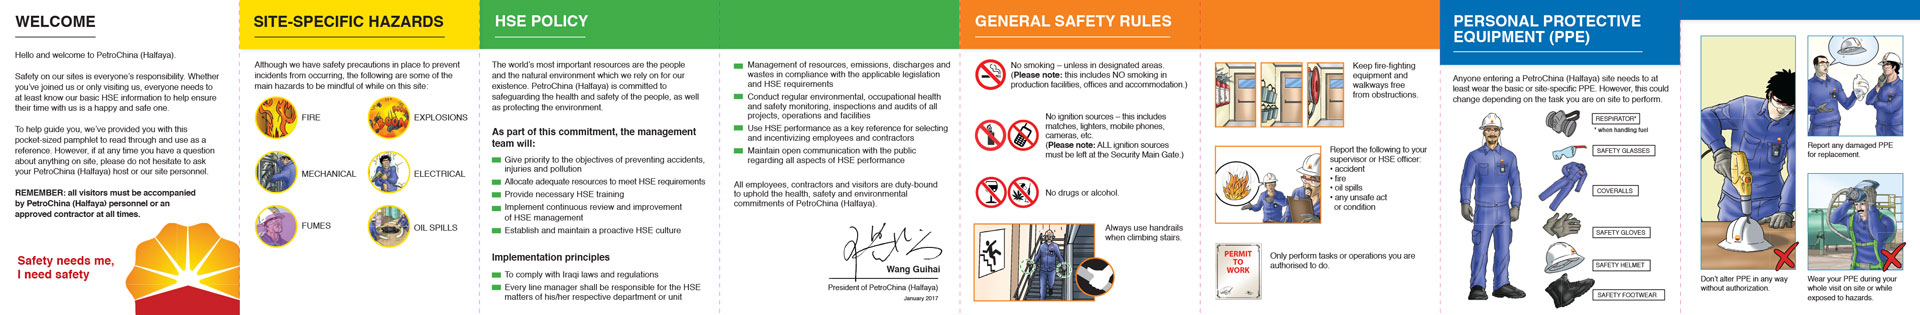 PetroChina Visitor Safety Brochure